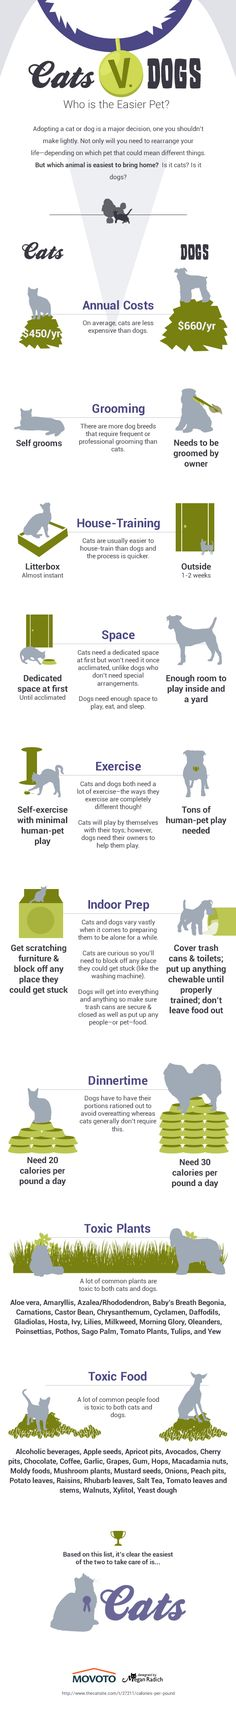 Cat Man Do | Dr. Arnold Plotnick: Cats vs Dogs - Who is the Easier Pet (Infographic)